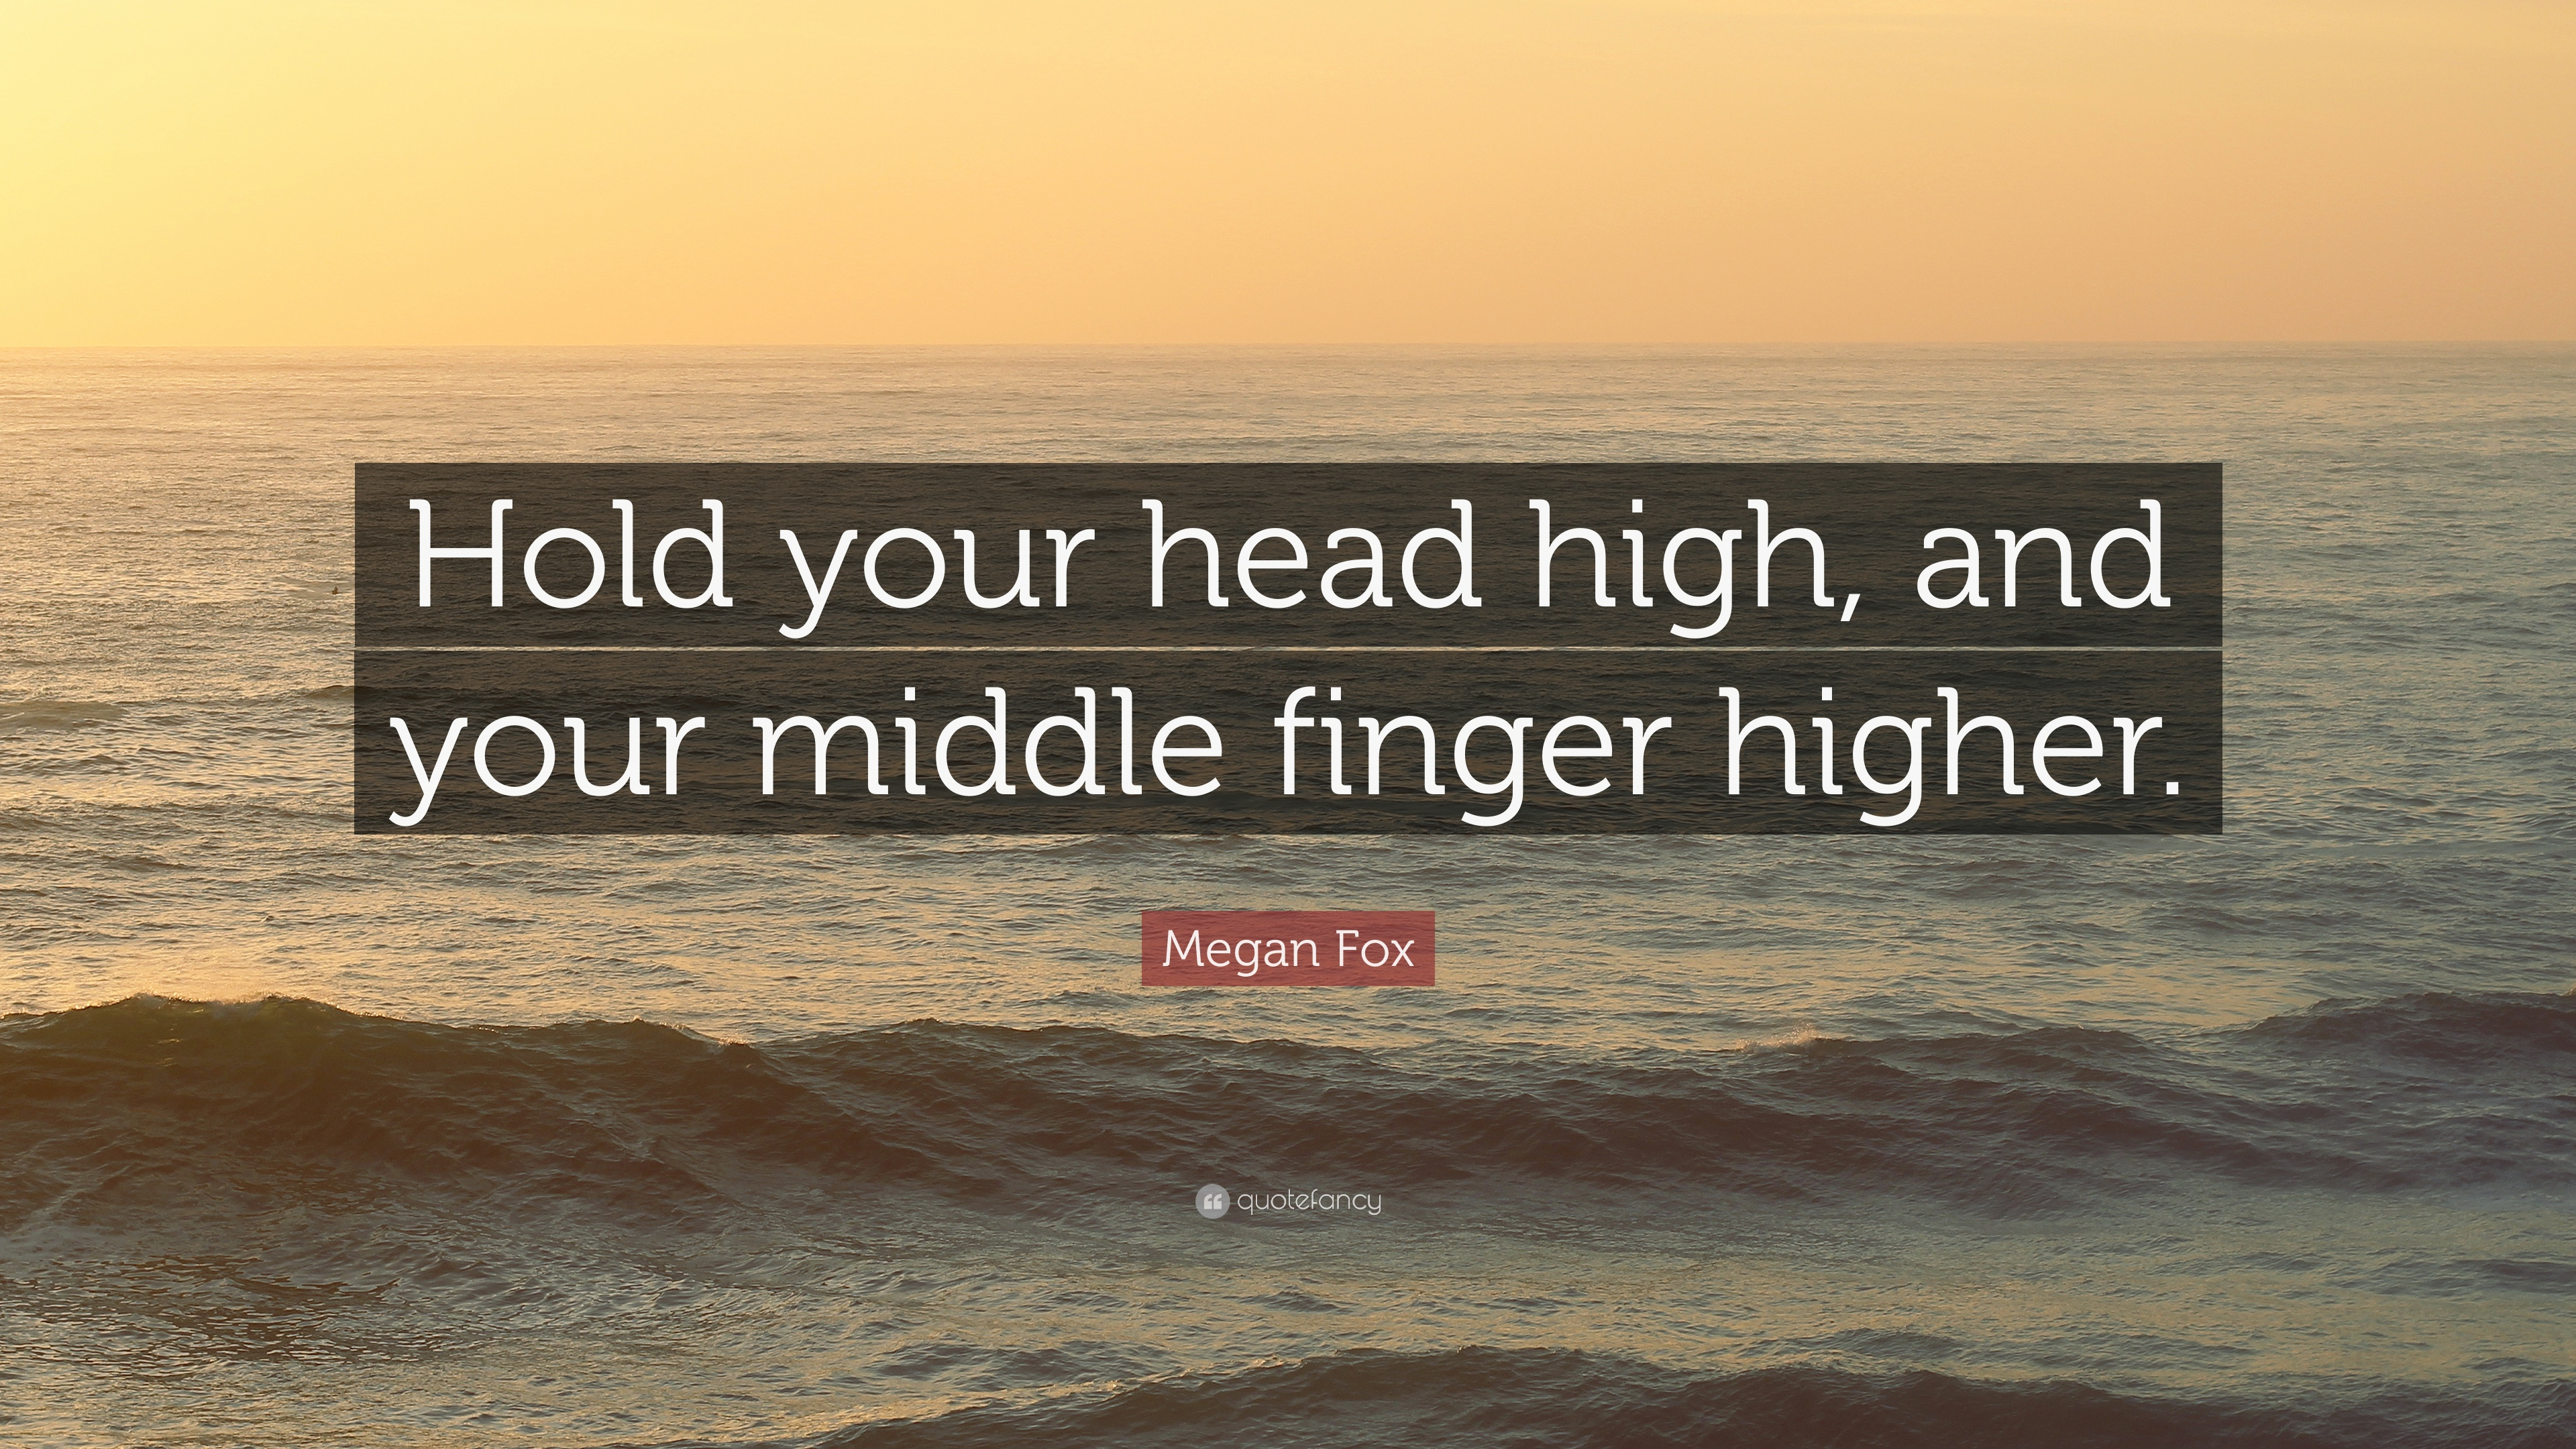 Megan Fox Quote Hold Your Head High And Your Middle Finger Higher